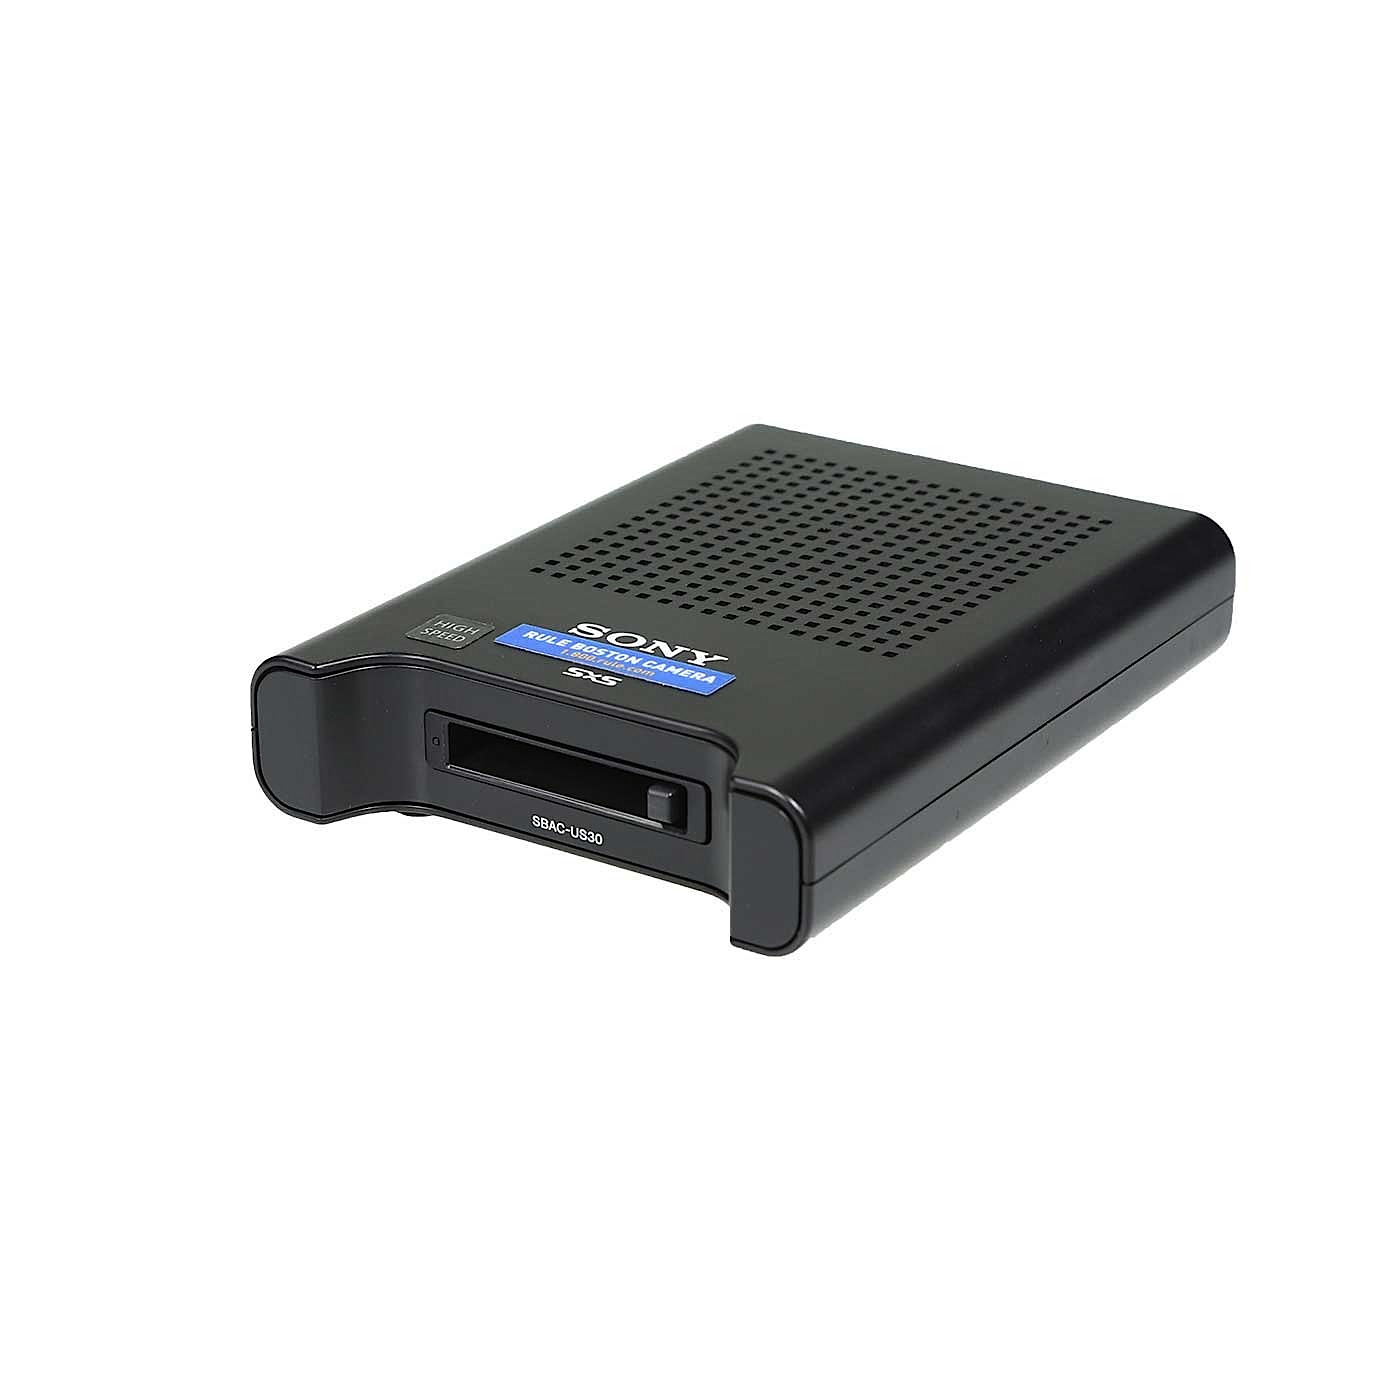 Sony SBAC US30 SxS USB 3.0 Memory Card Reader